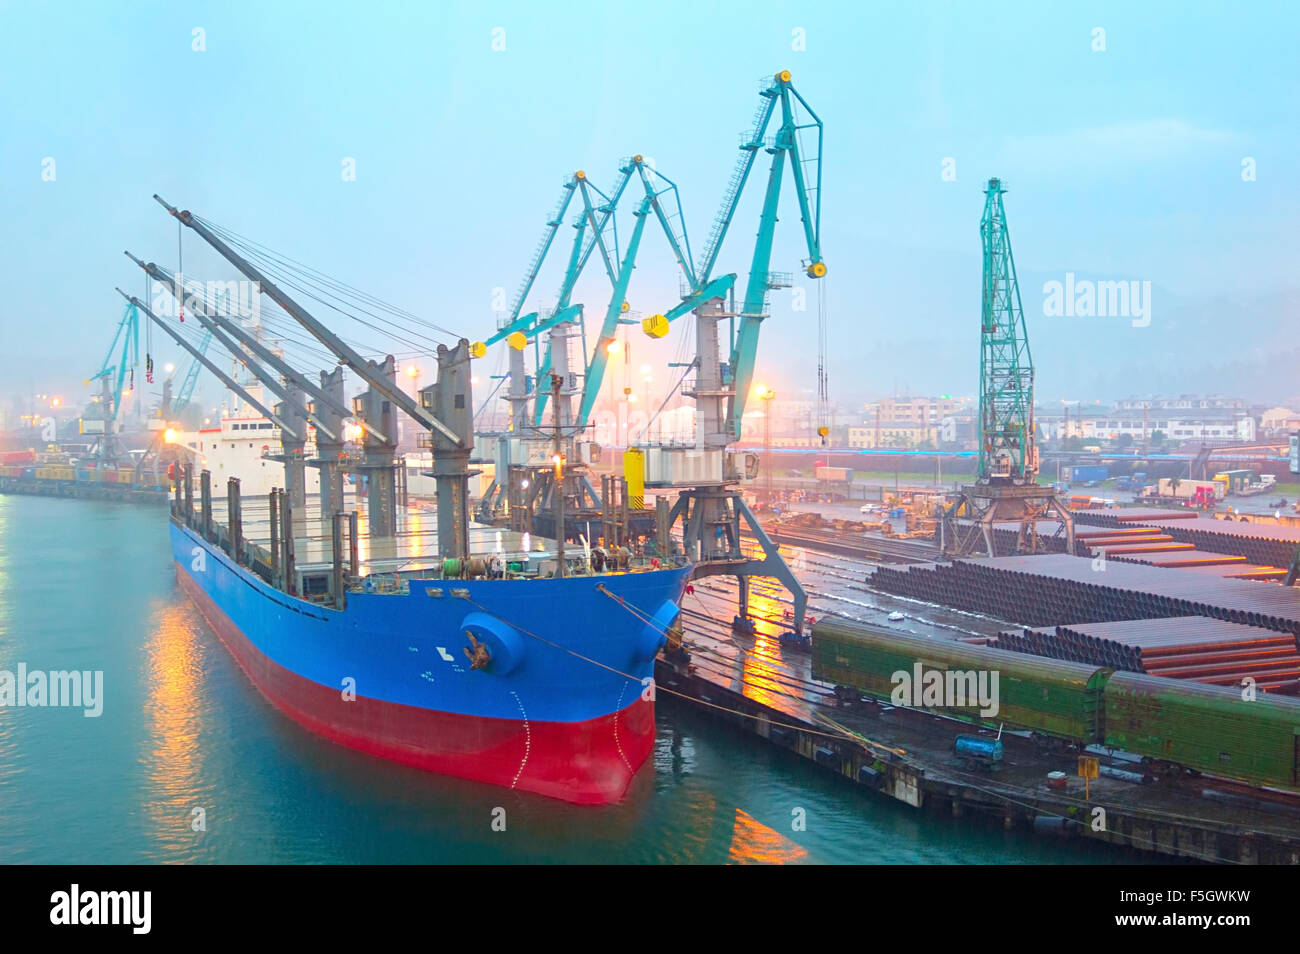 Industrial ship in Batumi port in the rainy evening. Georgia - Stock Image